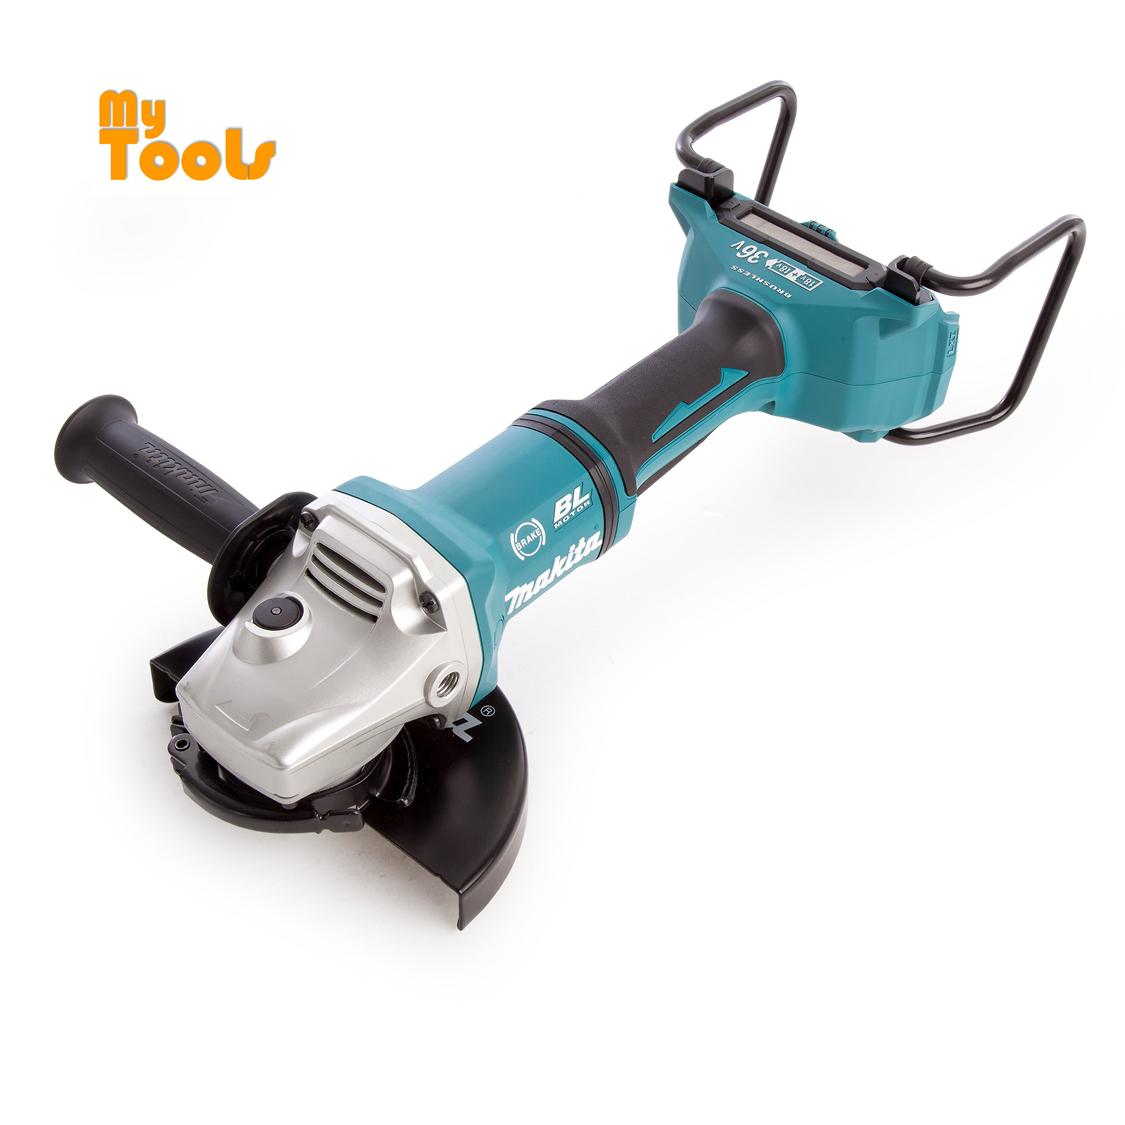 """Makita DGA700Z BL LXT 7""""Angle Grinder- Multicolour, 36 V, 165 mm Without charger and Battery"""